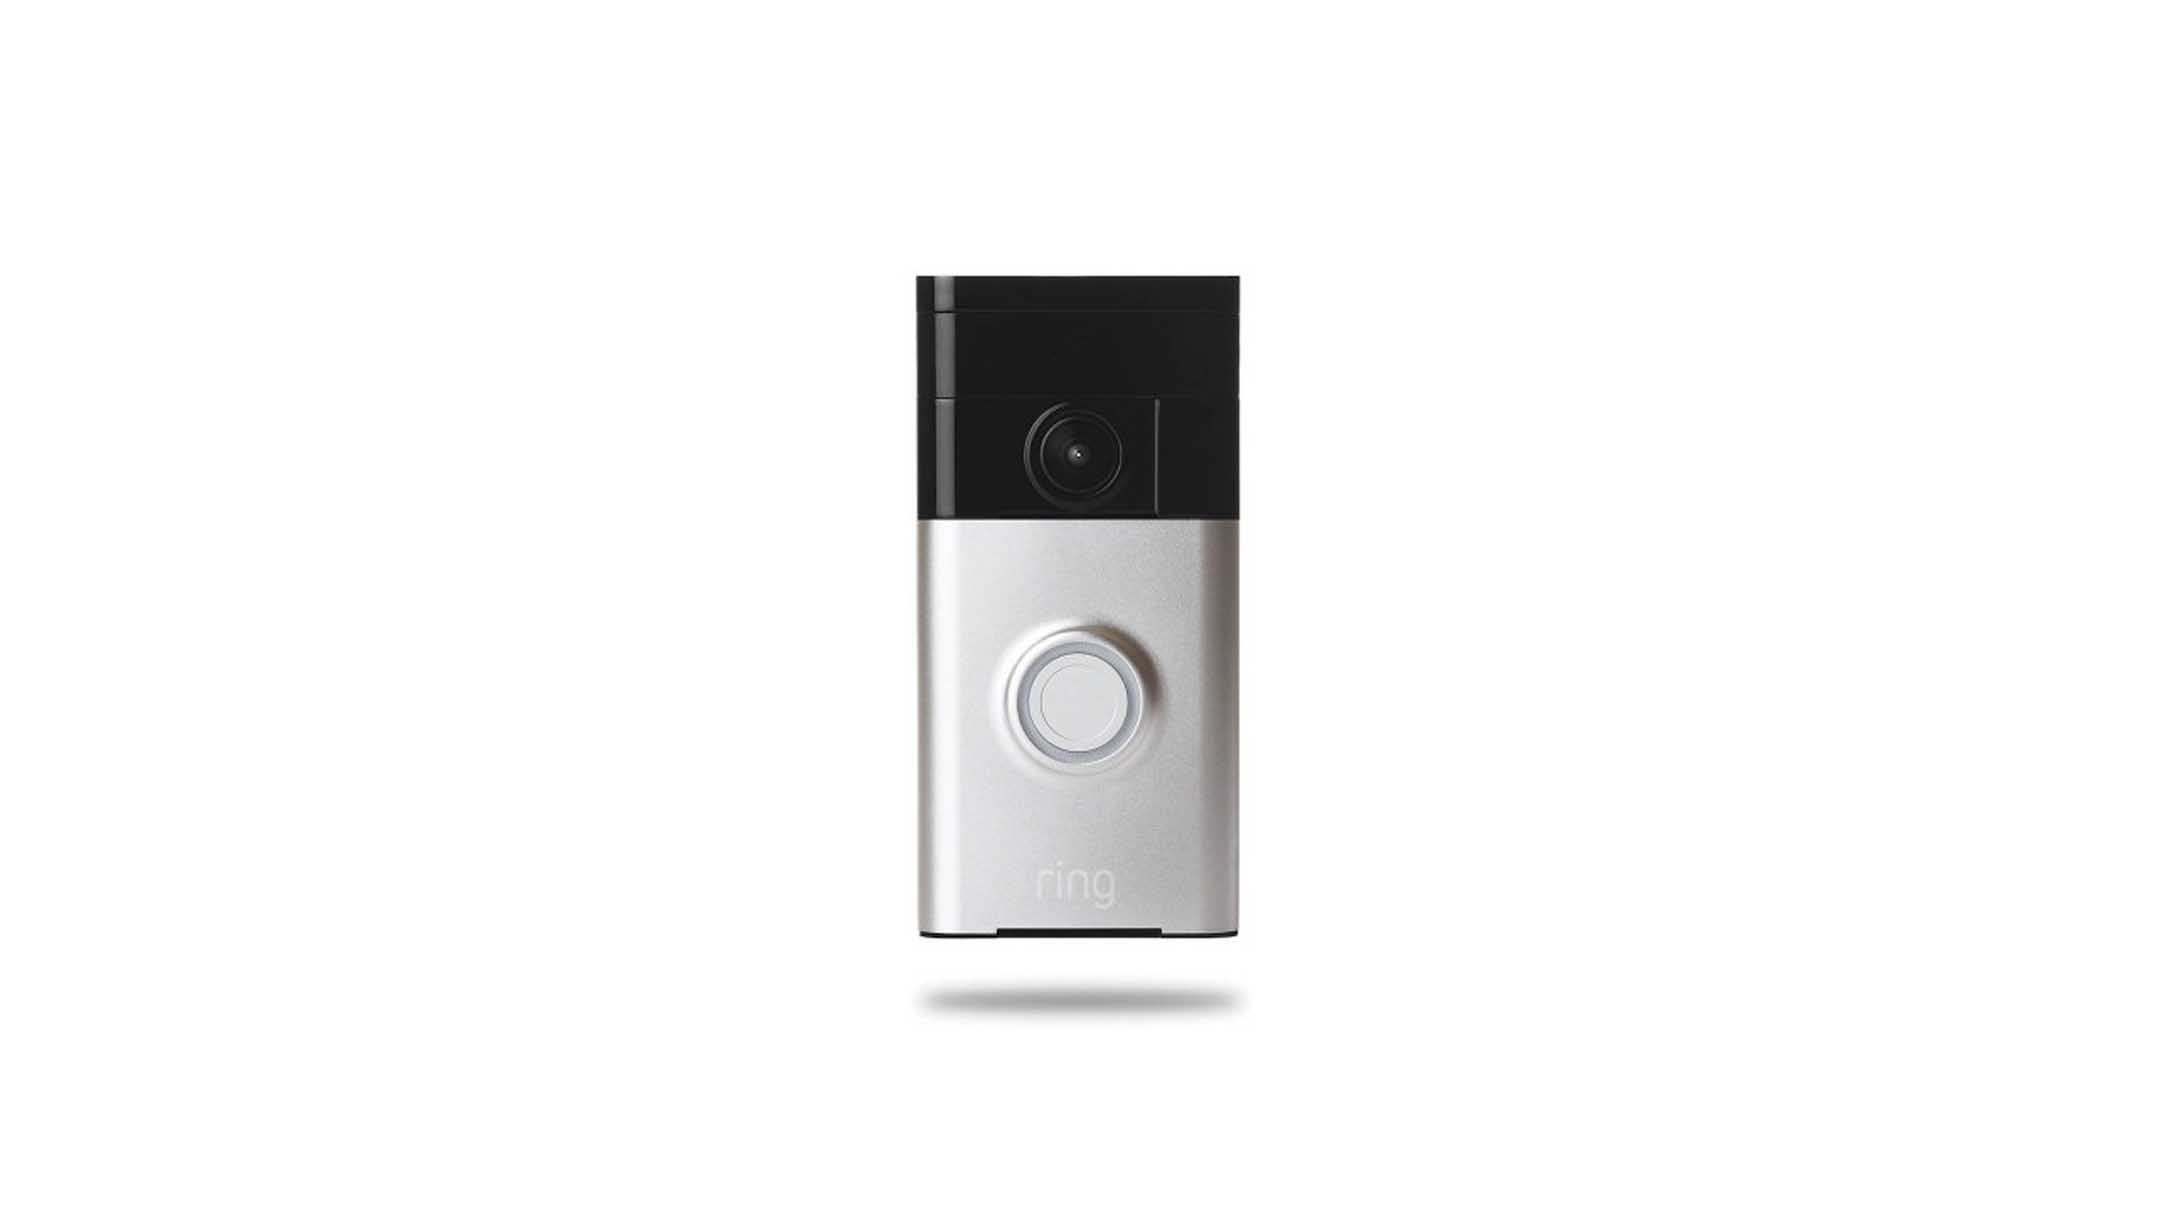 Ring amazon doorbell